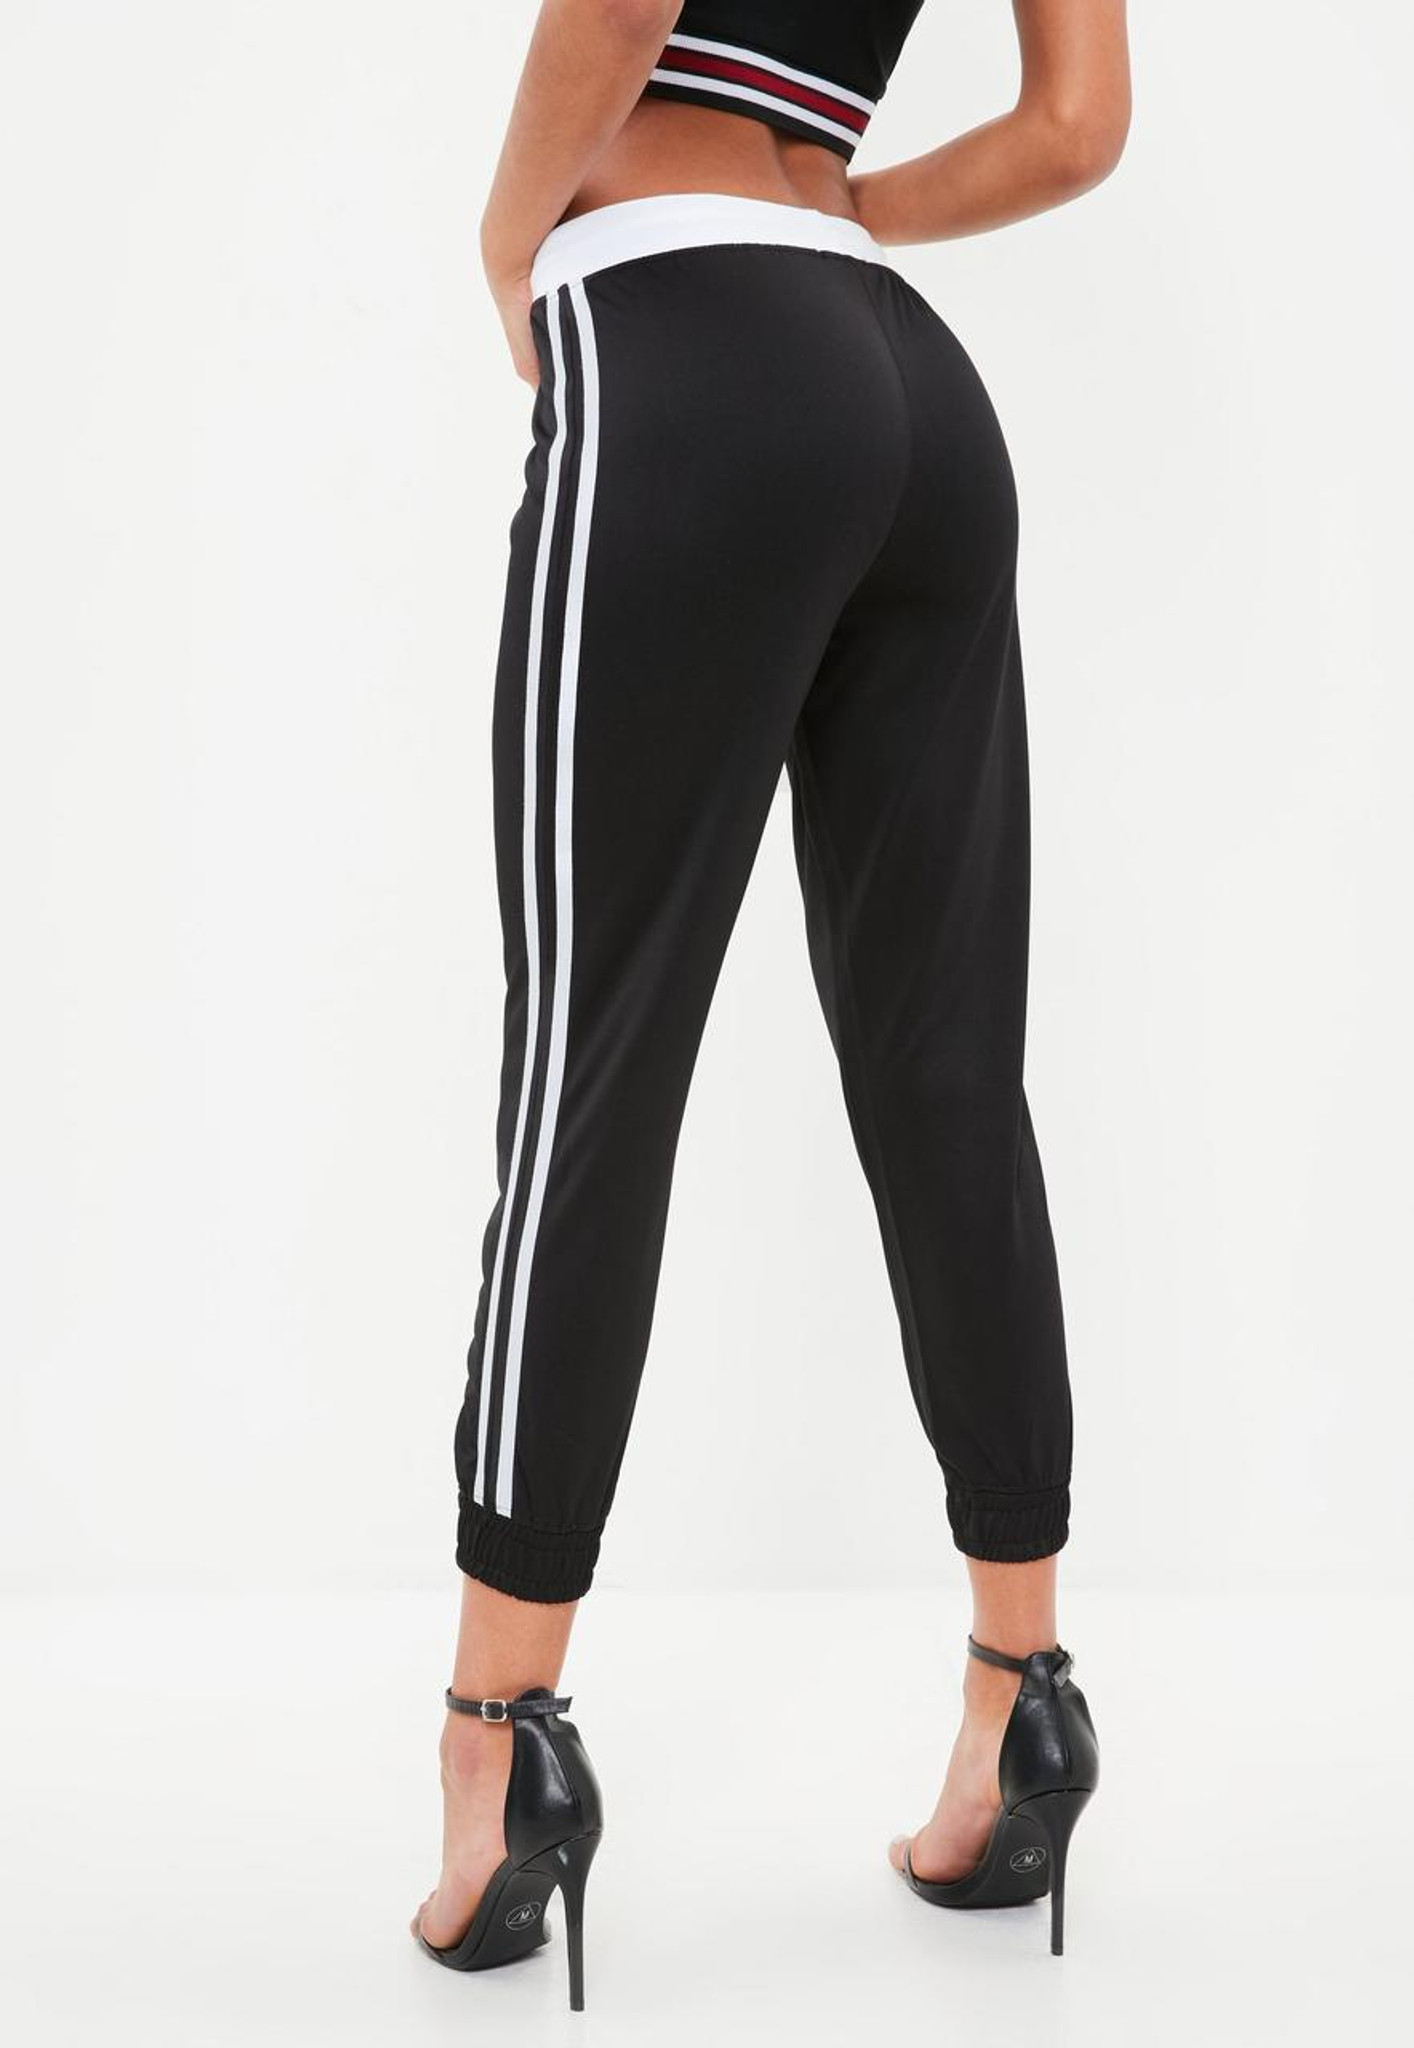 Fifth Avenue Women's MENZO Active Crop Jogger Pants - Black and White